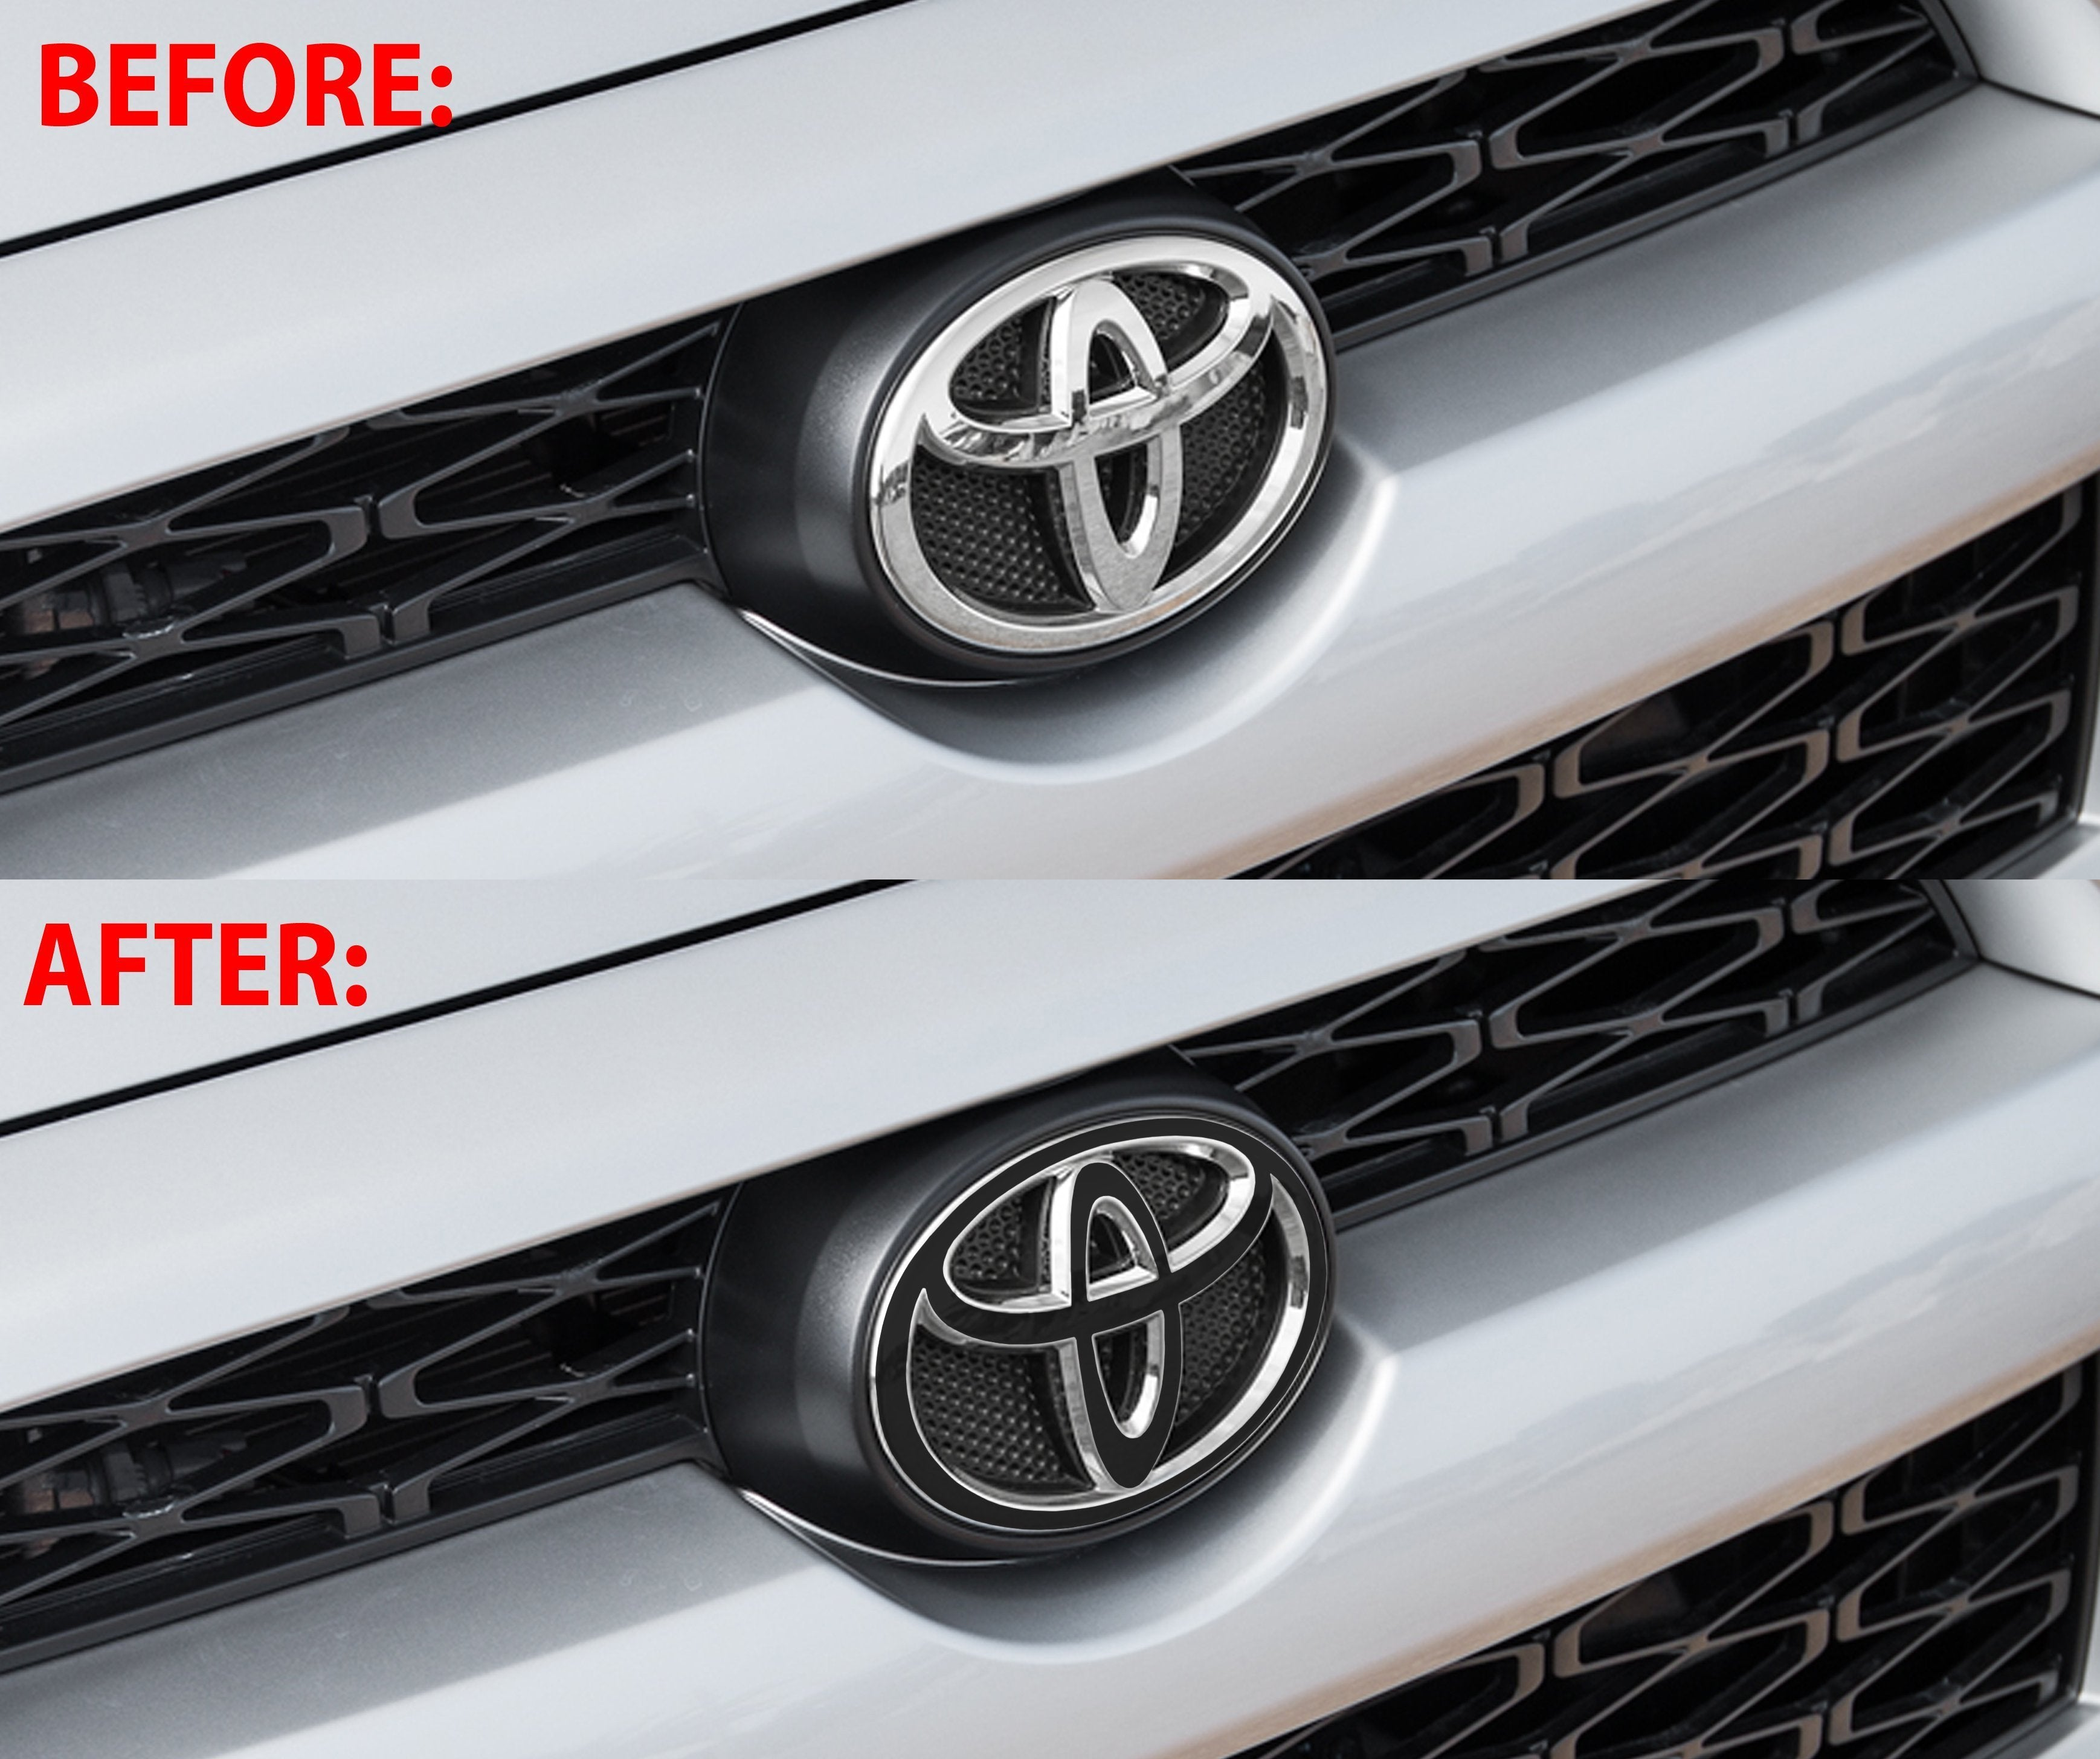 Premium Cast Vinyl Grille Logo Inlay Decals for 2010-2020 4Runner - 4x4 Runners